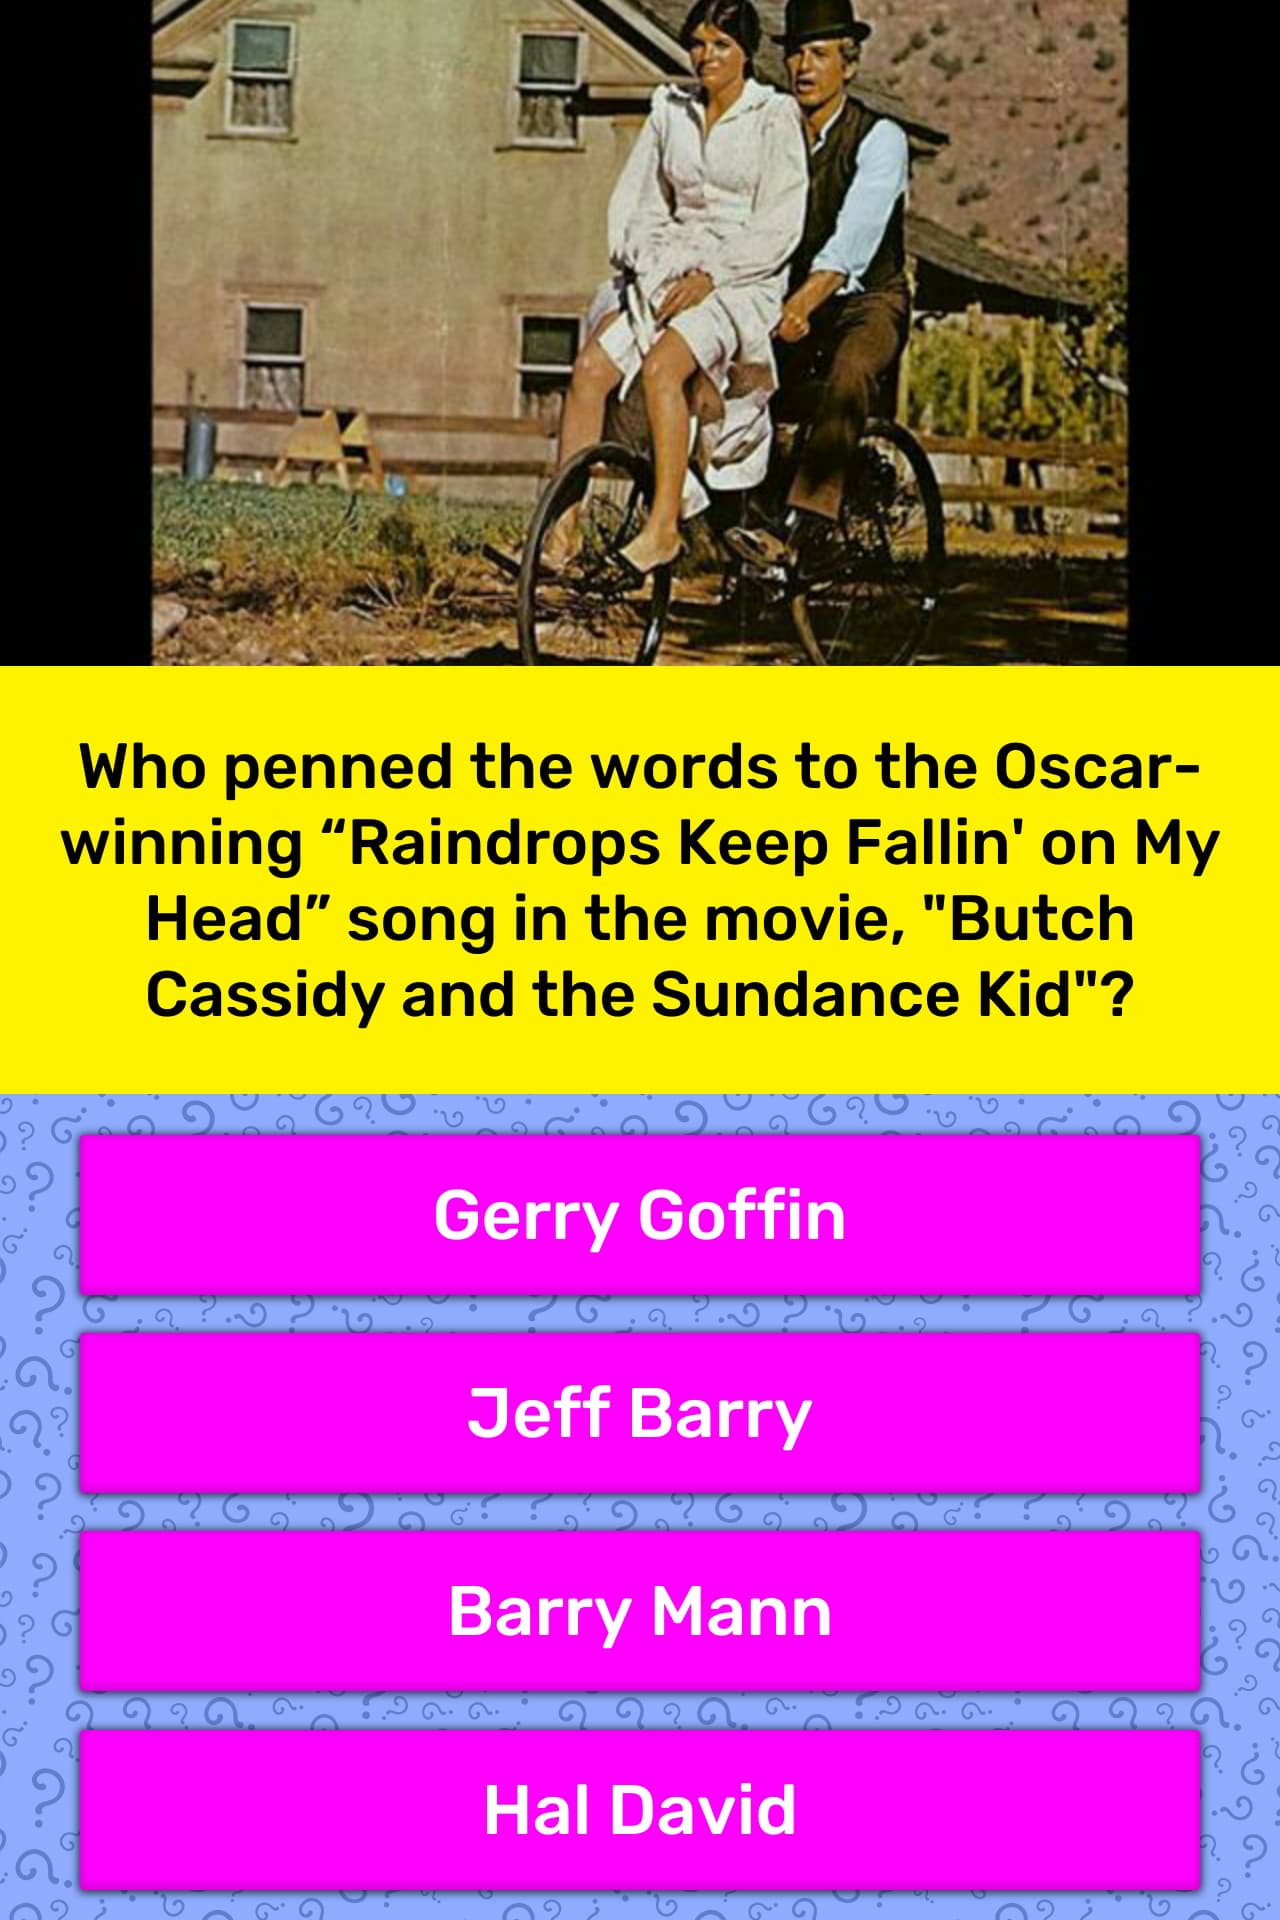 Who penned the words to the    | Trivia Answers | QuizzClub